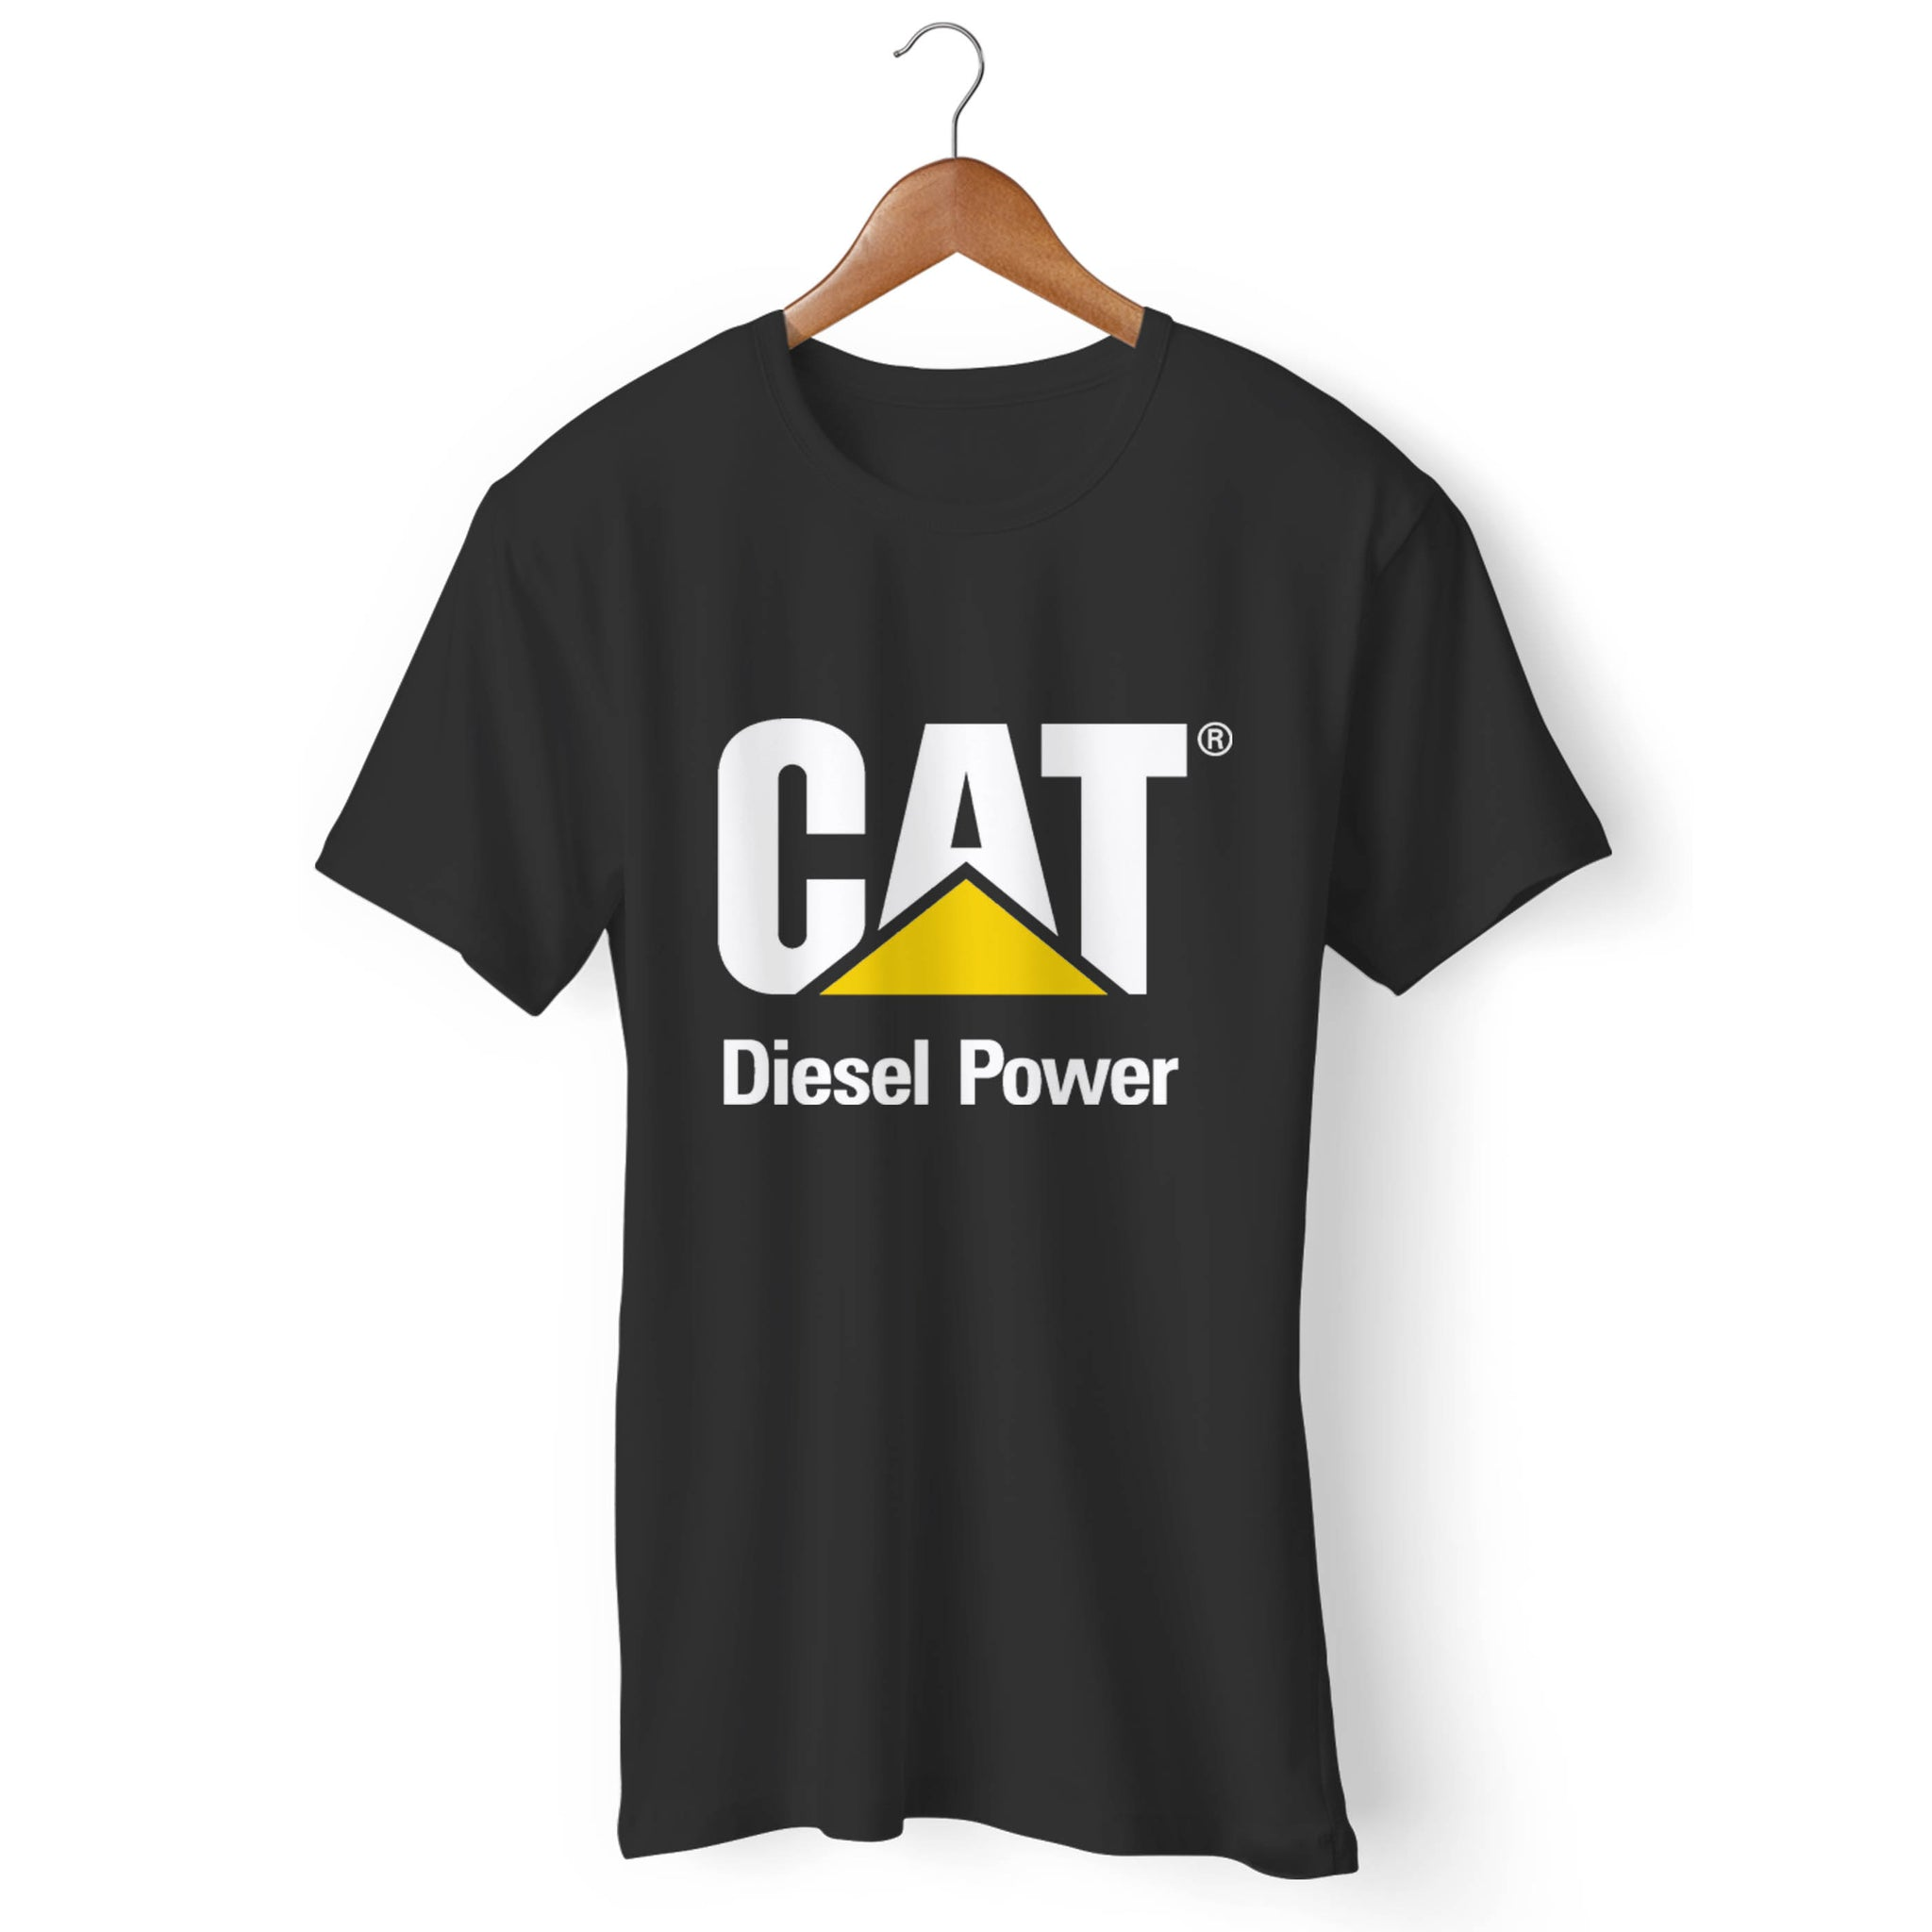 Diesel Power Cat Man's T-Shirt